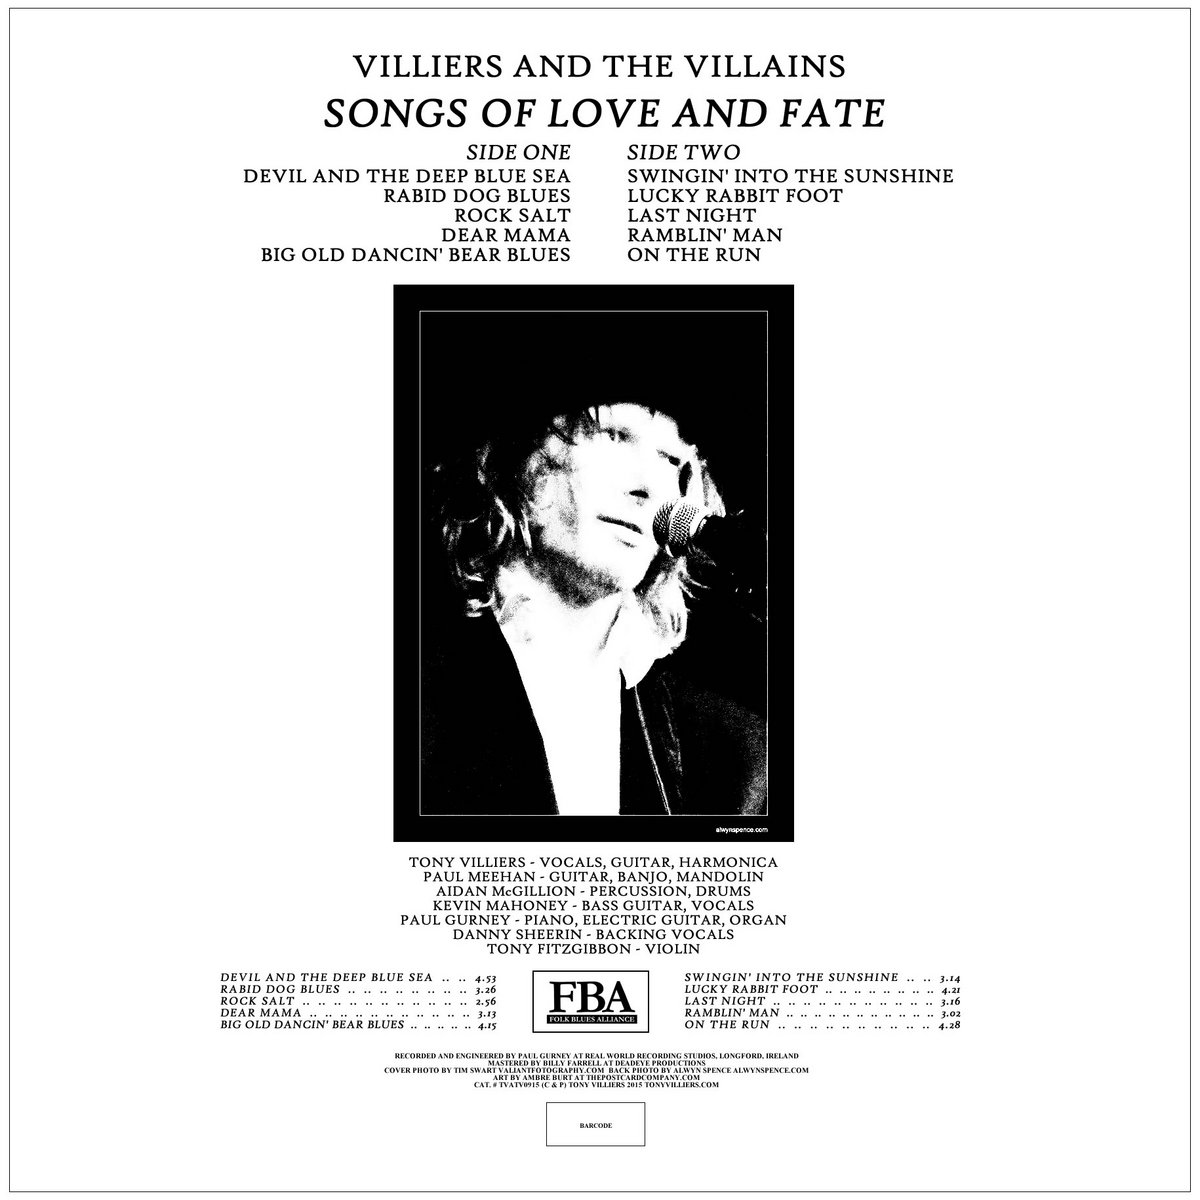 Songs of Love and Fate | VILLIERS AND THE VILLAINS